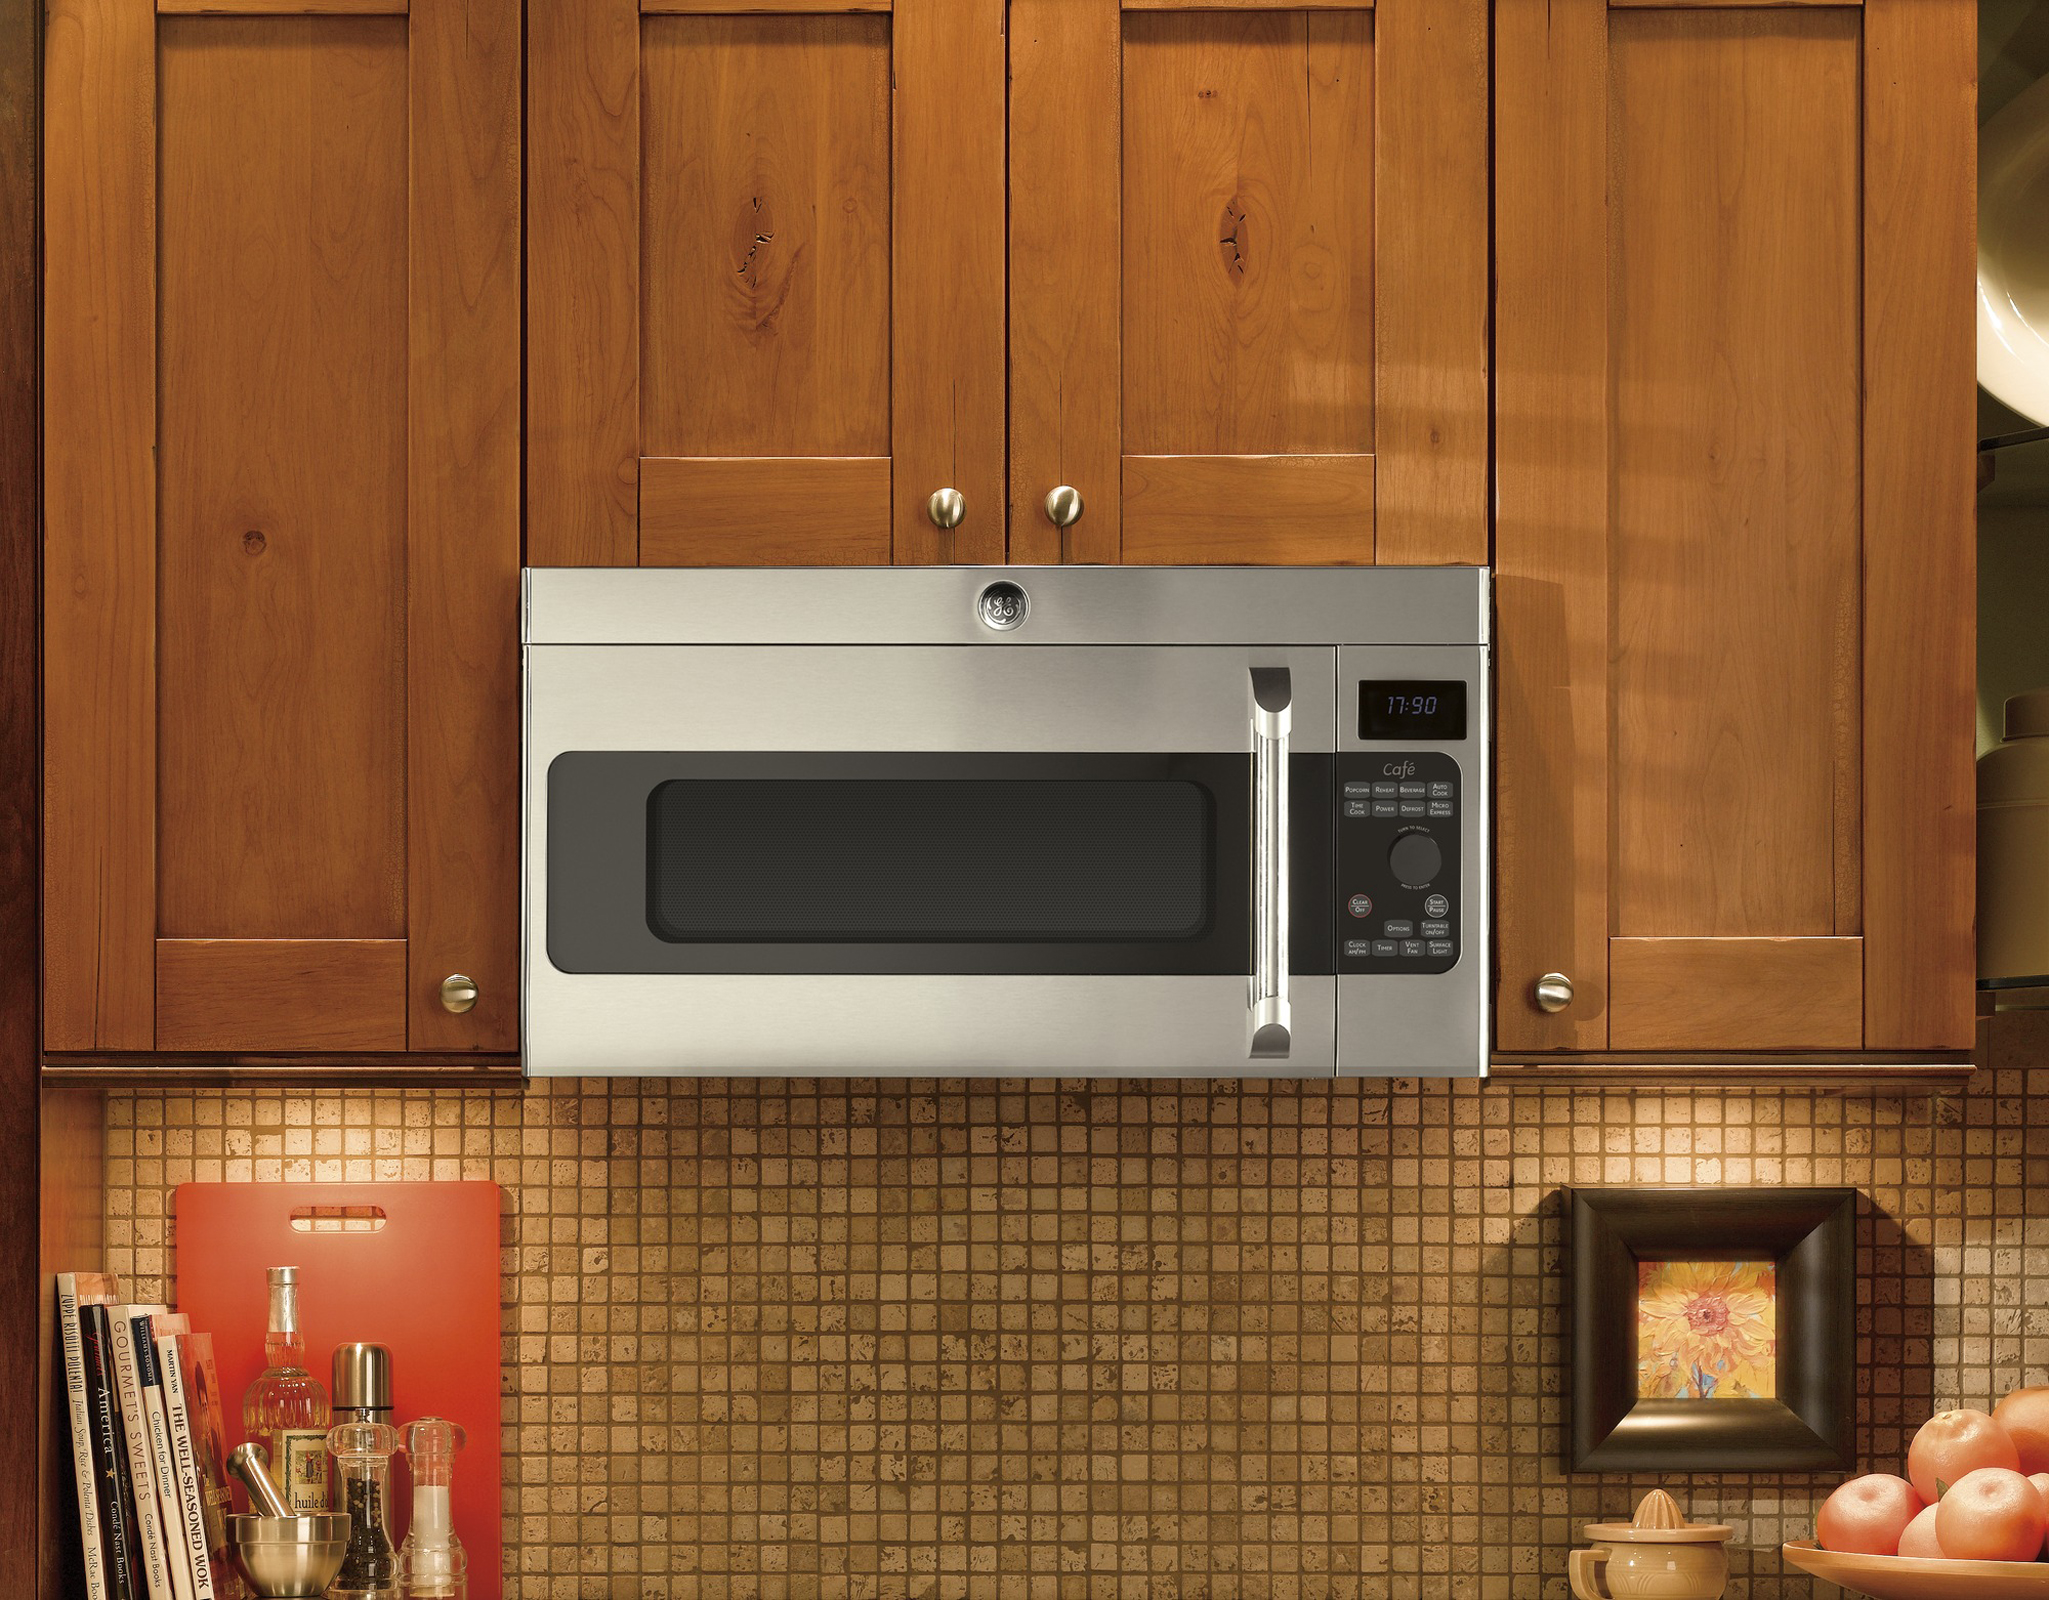 GE Cafe™ Series CVM1750SHSS 1.7 cu. ft. Over-the-Range Microwave Oven - Stainless Steel